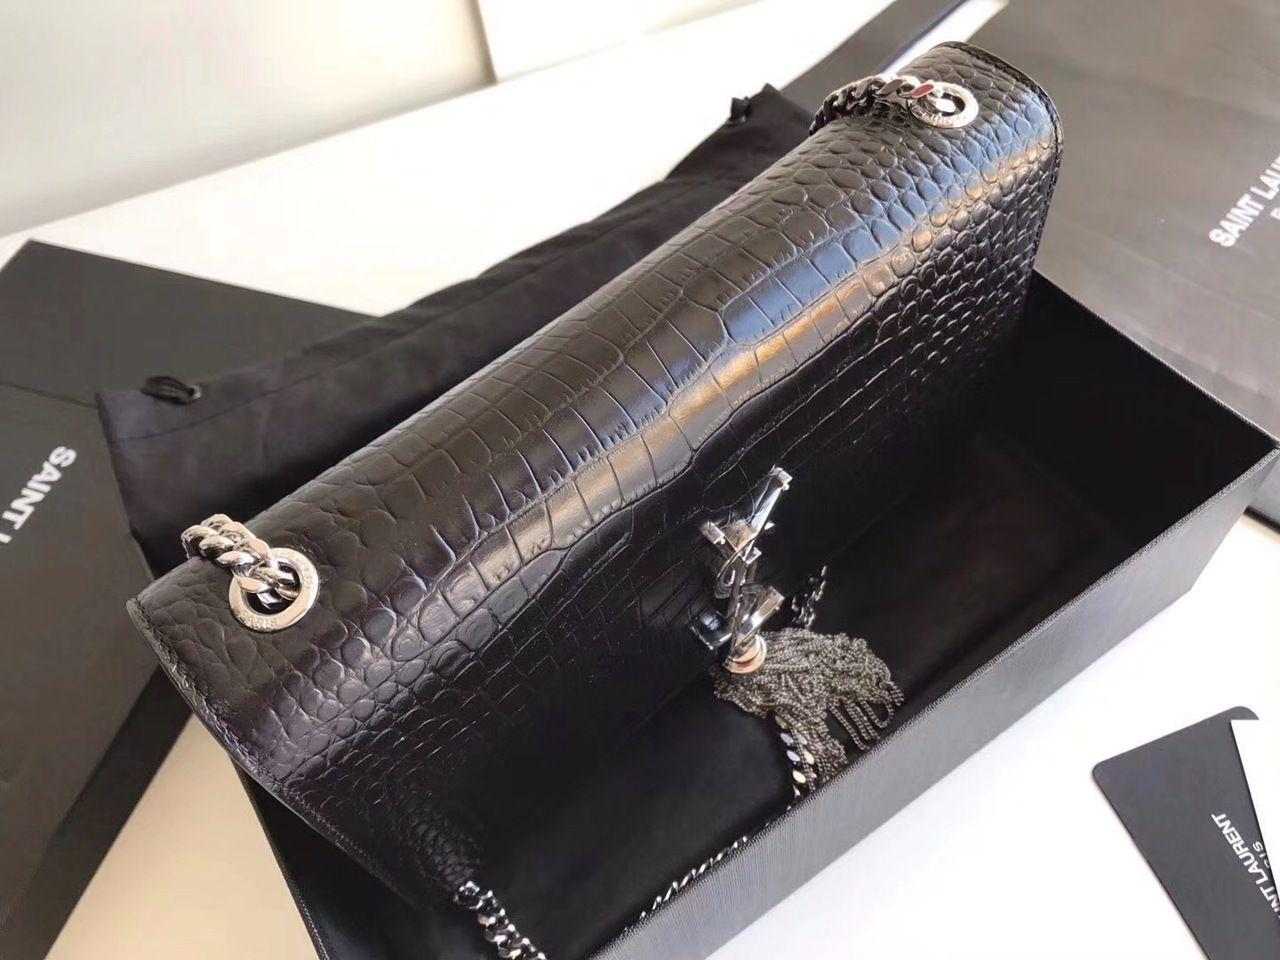 6ba91c432ad Saint Laurent CLASSIC MEDIUM KATE TASSEL SATCHEL IN BLACK CROCODILE  EMBOSSED SHINY LEATHER WITH SILVER HARDWARE - Bella Vita Moda #ysl bag  #ysllover ...